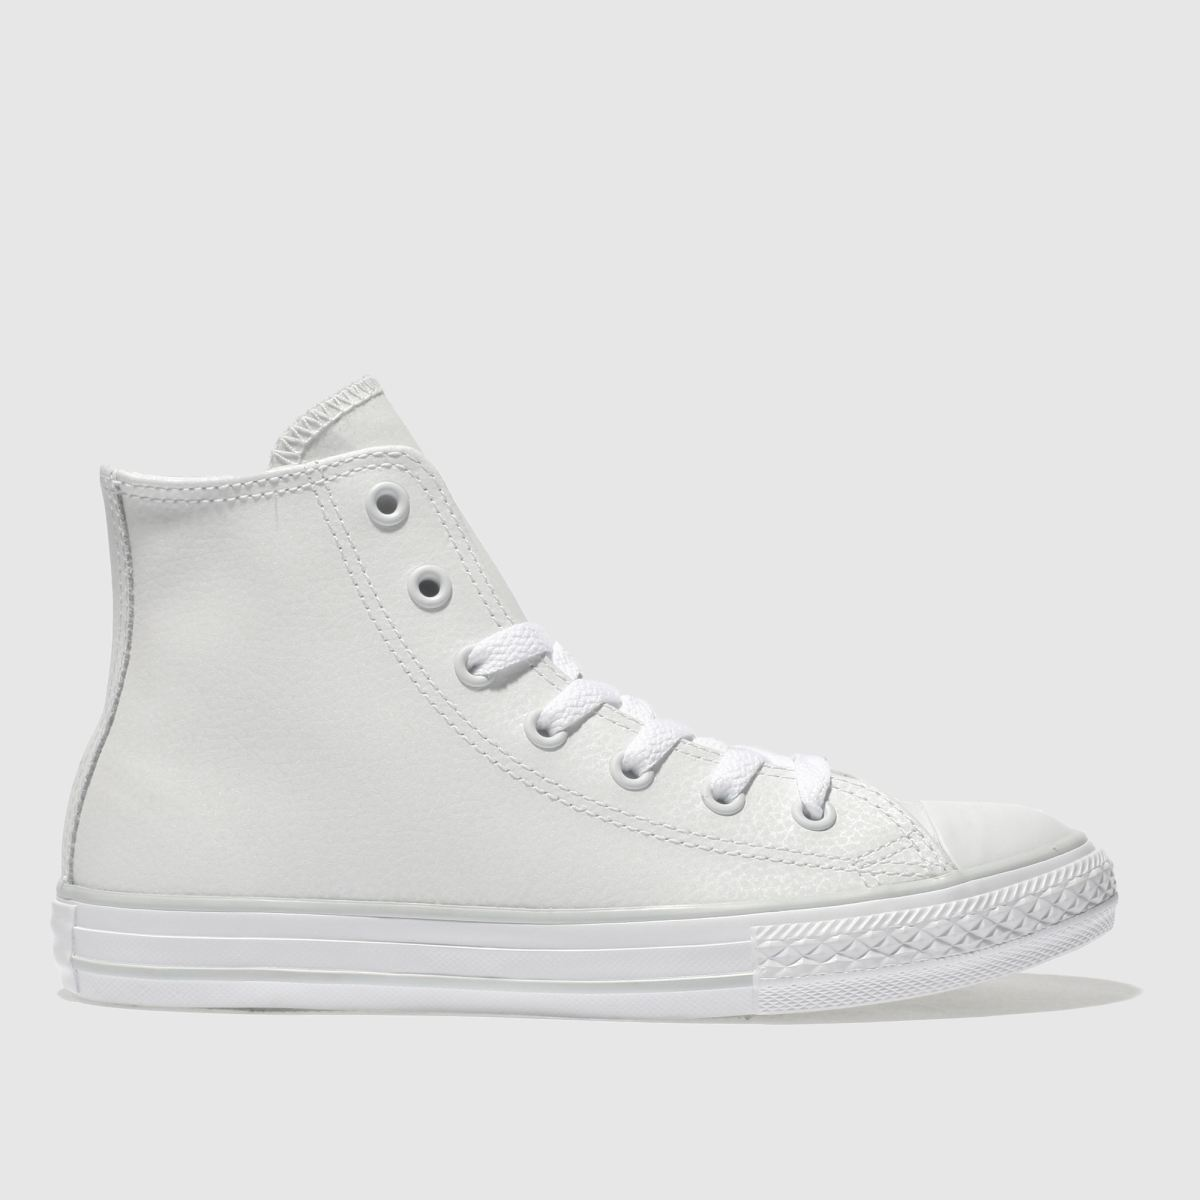 Converse White All Star Hi Leather Girls Junior Trainers